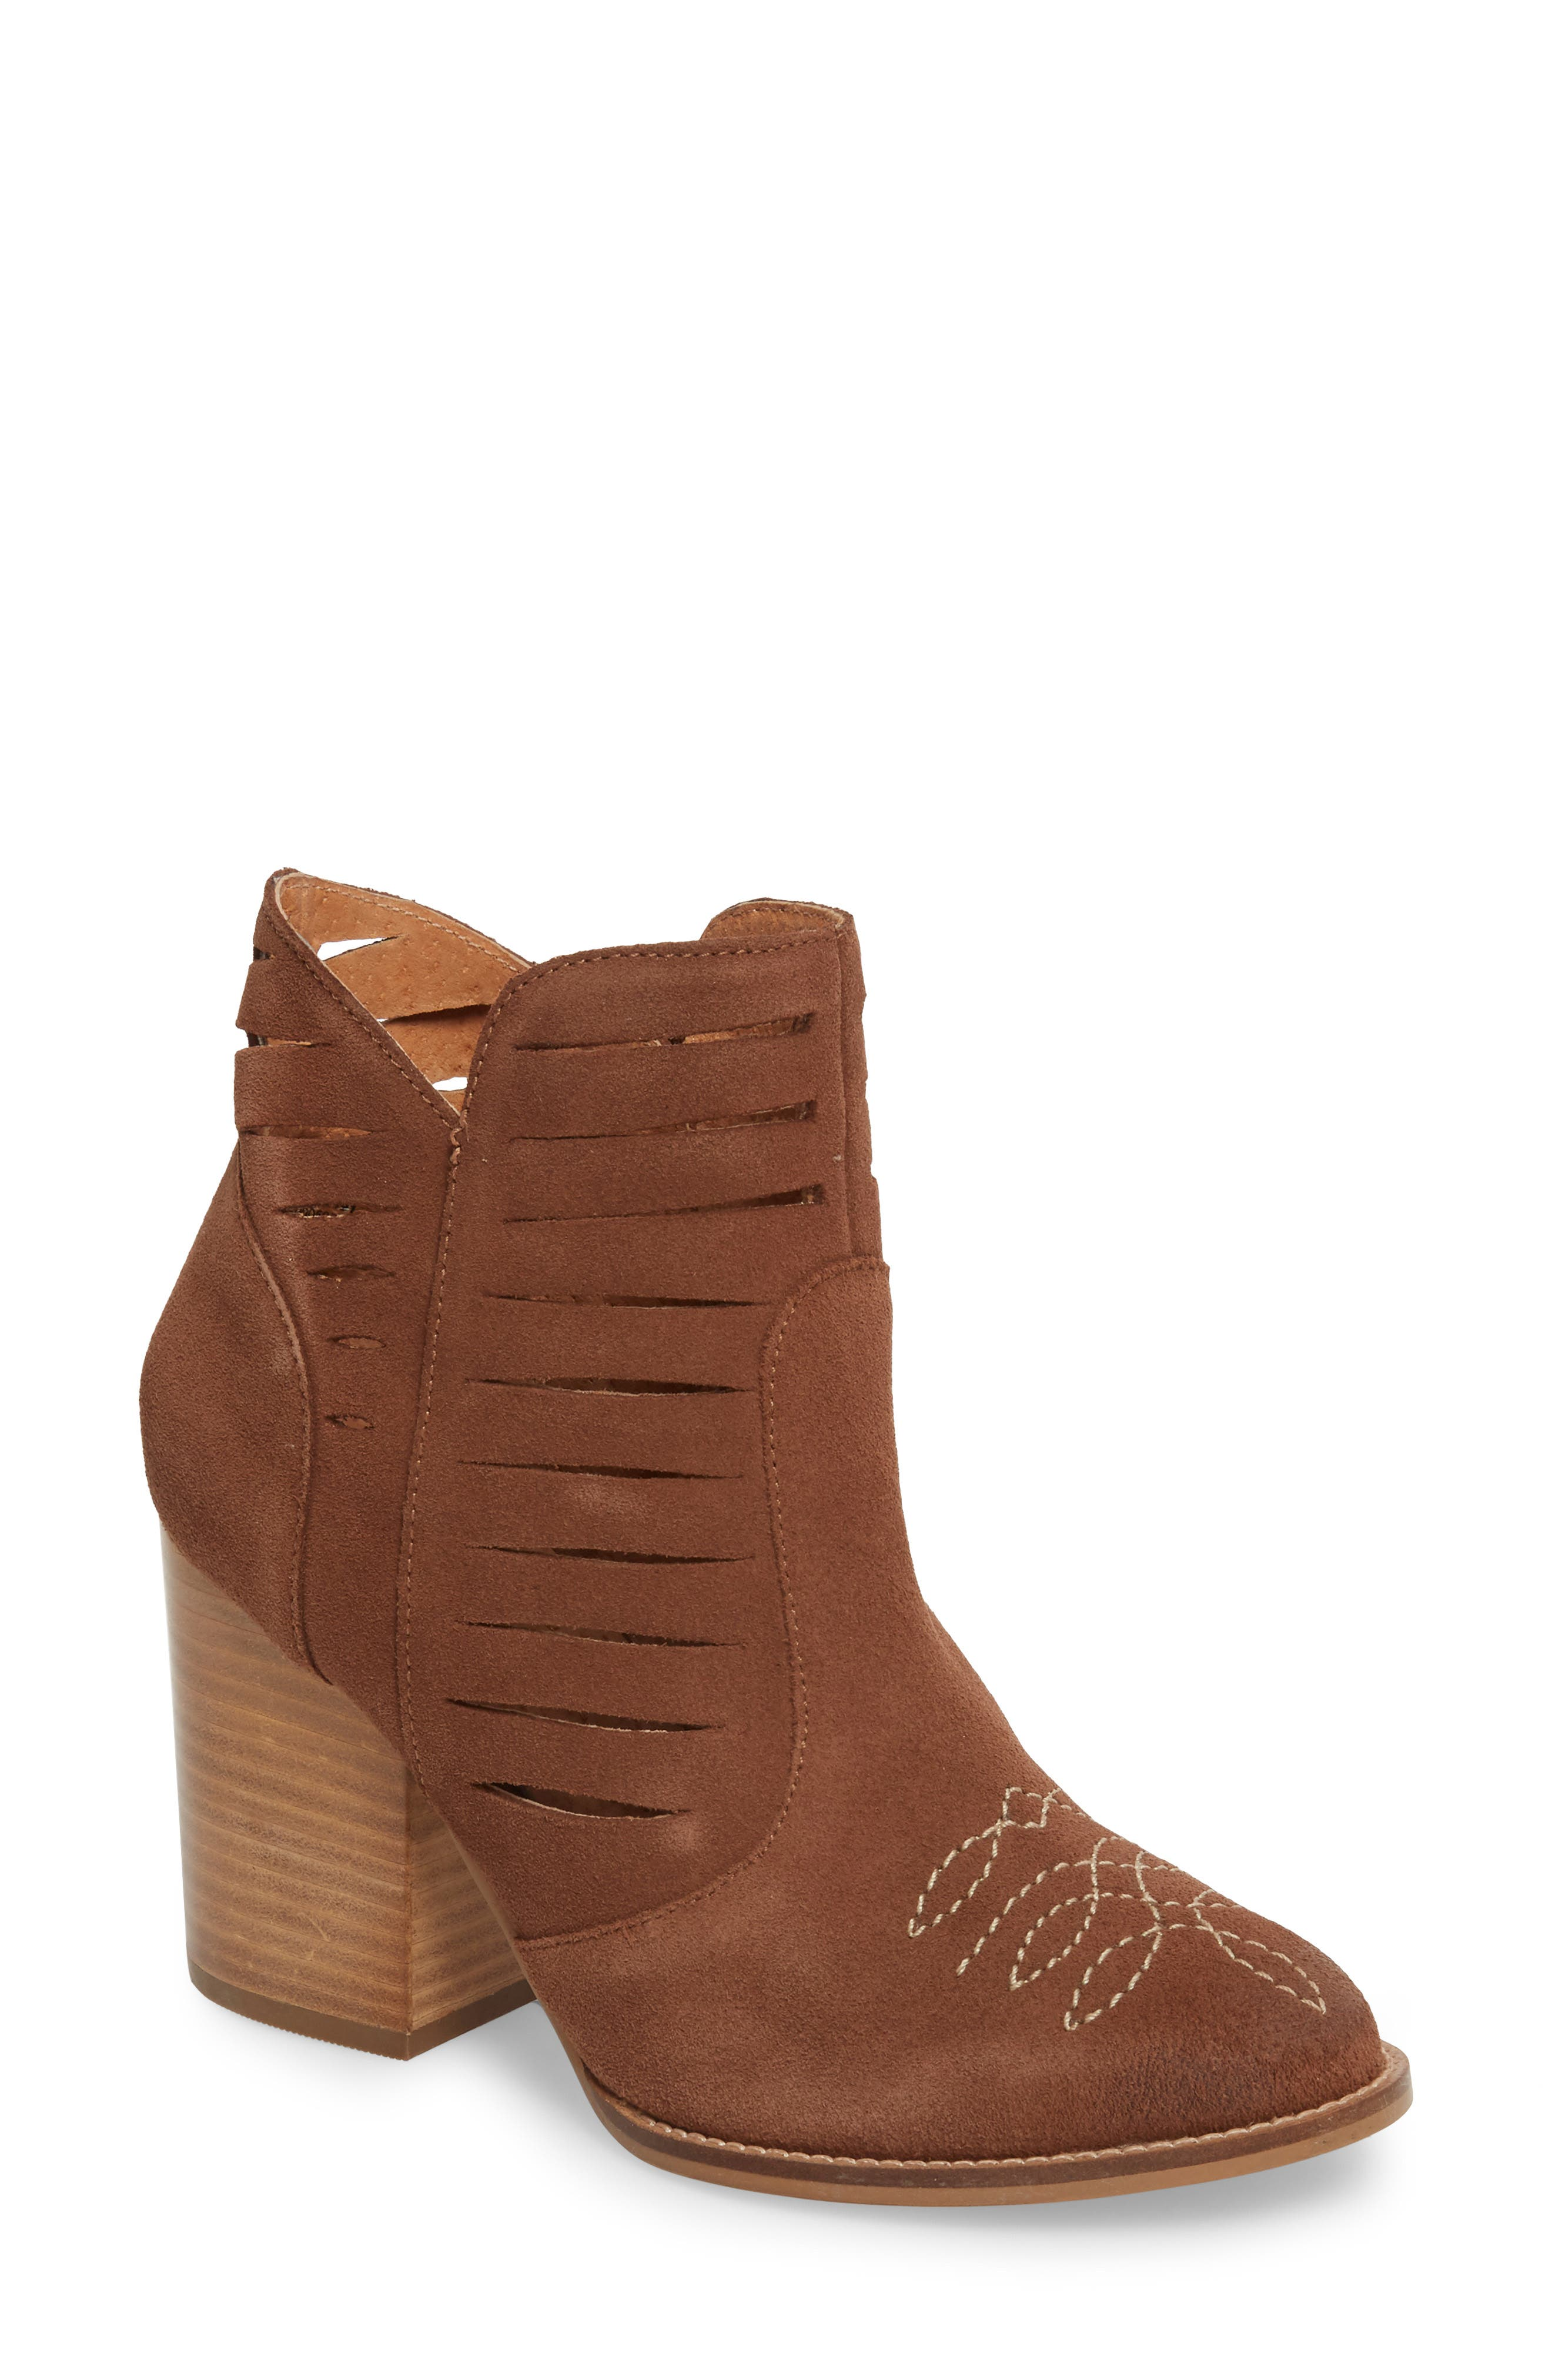 Adriana Western Bootie,                         Main,                         color, Whiskey Suede